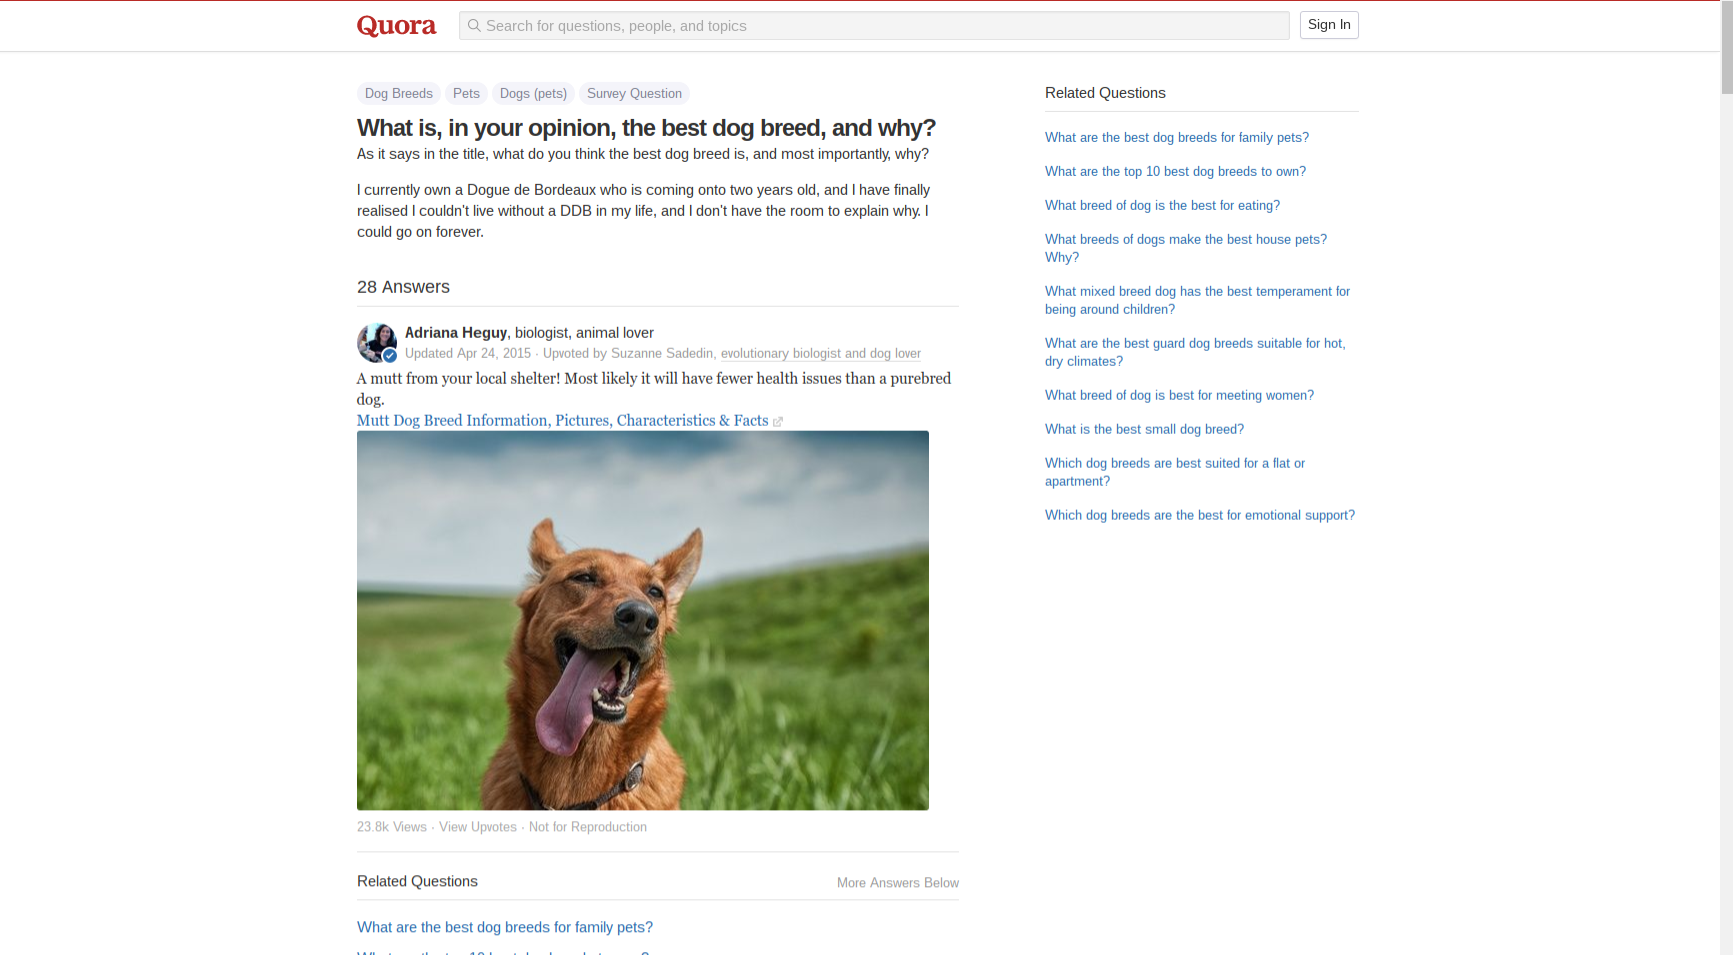 quora-search-on-in-your-opinion-the-best-dog-breed-and-why.png